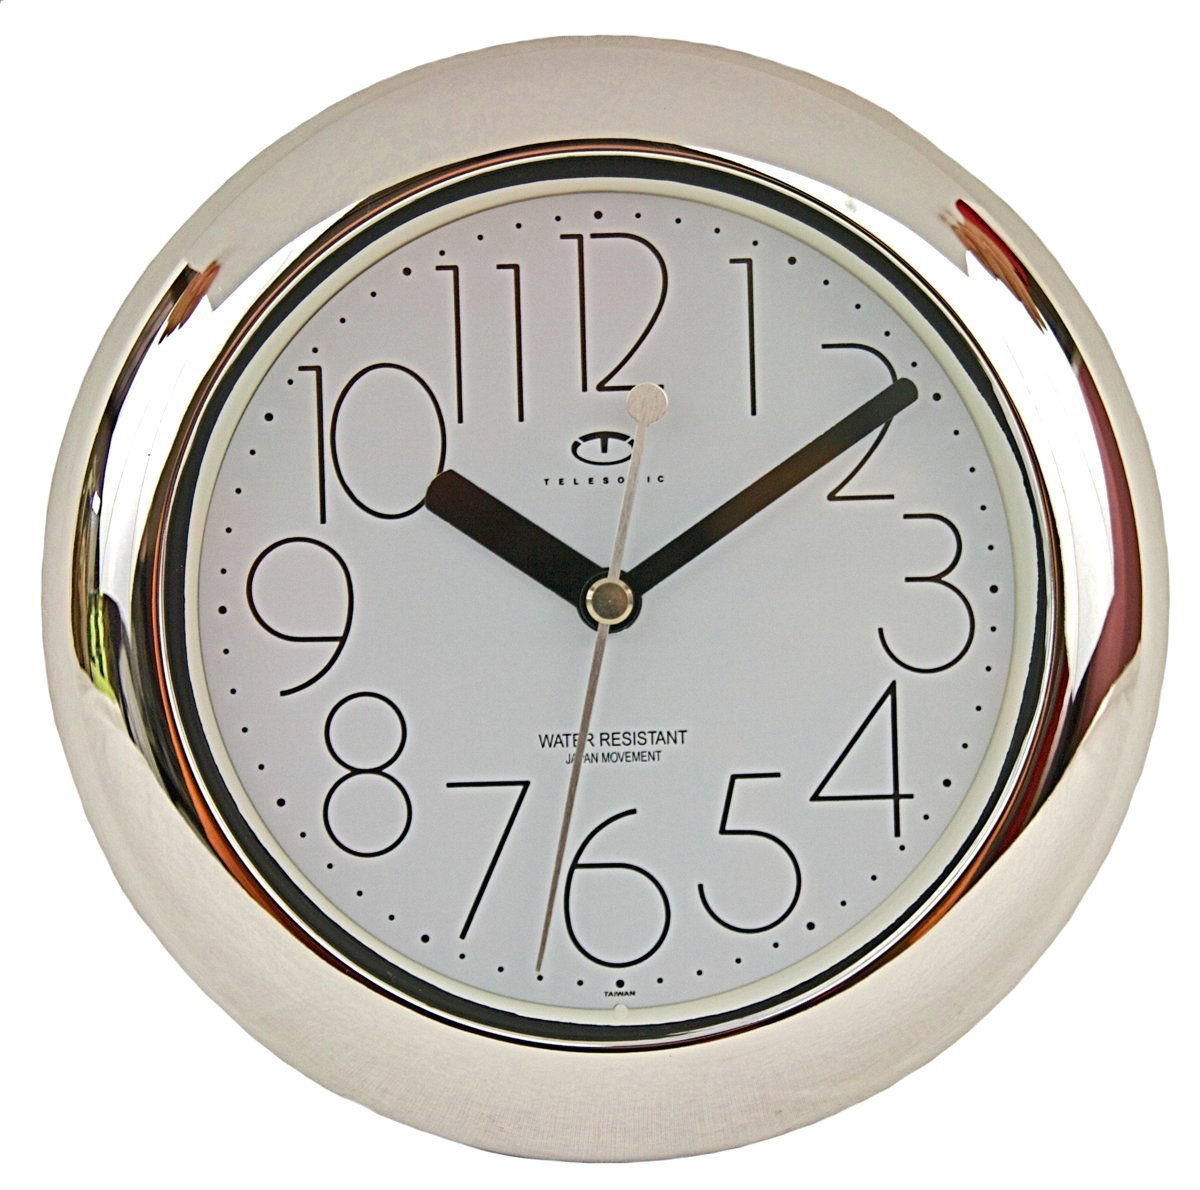 Telesonic Water Resistant Wall Clock Quiet Sweep Movement - Silver